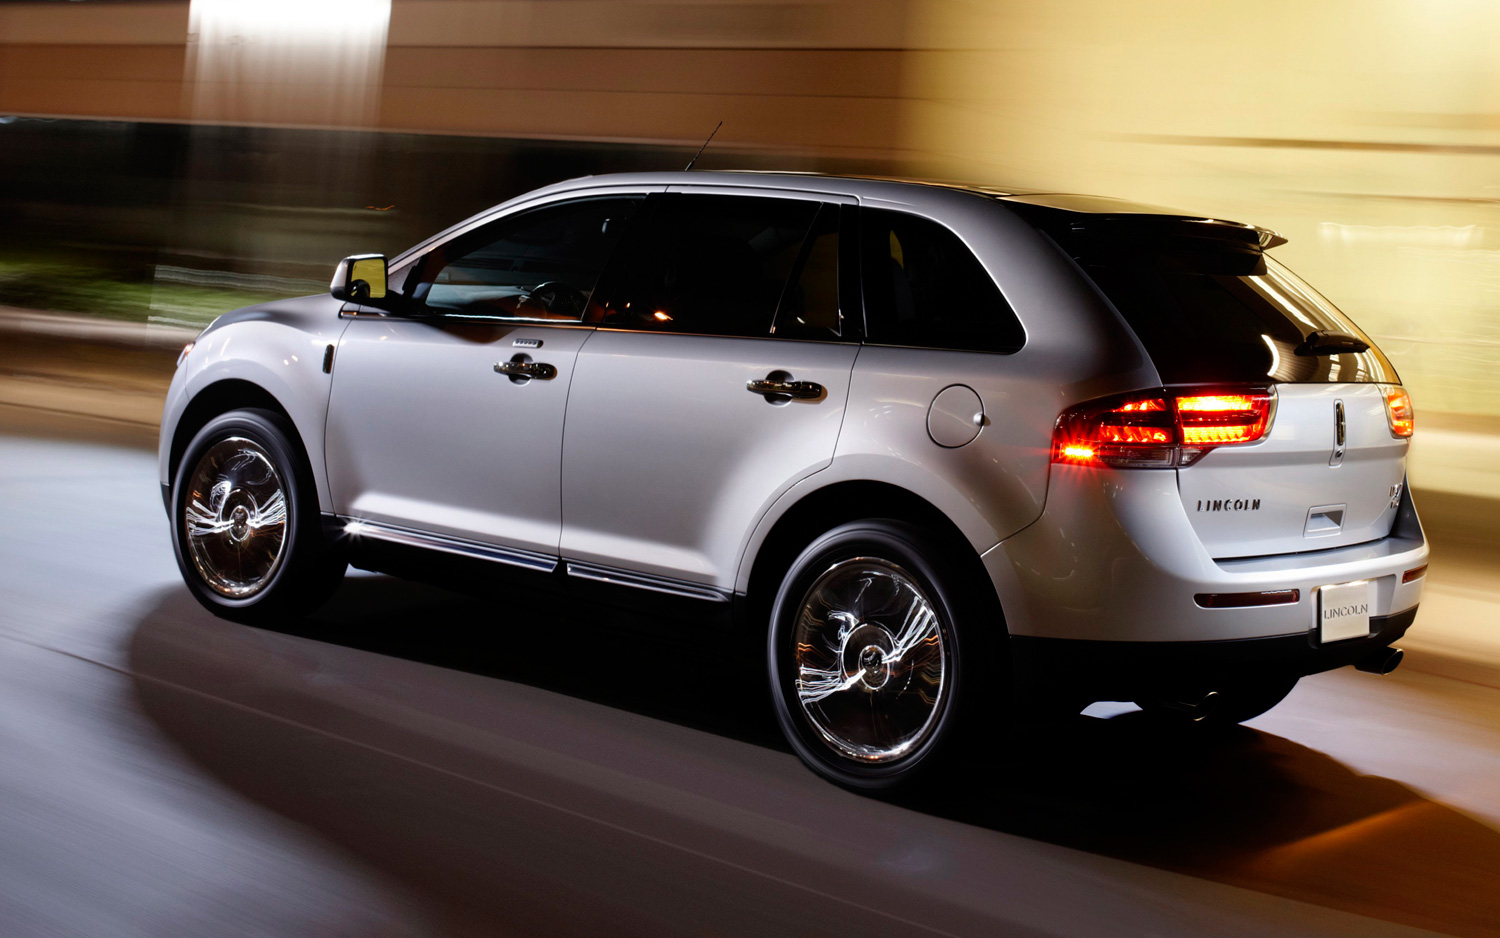 2012 Lincoln Mkx #5